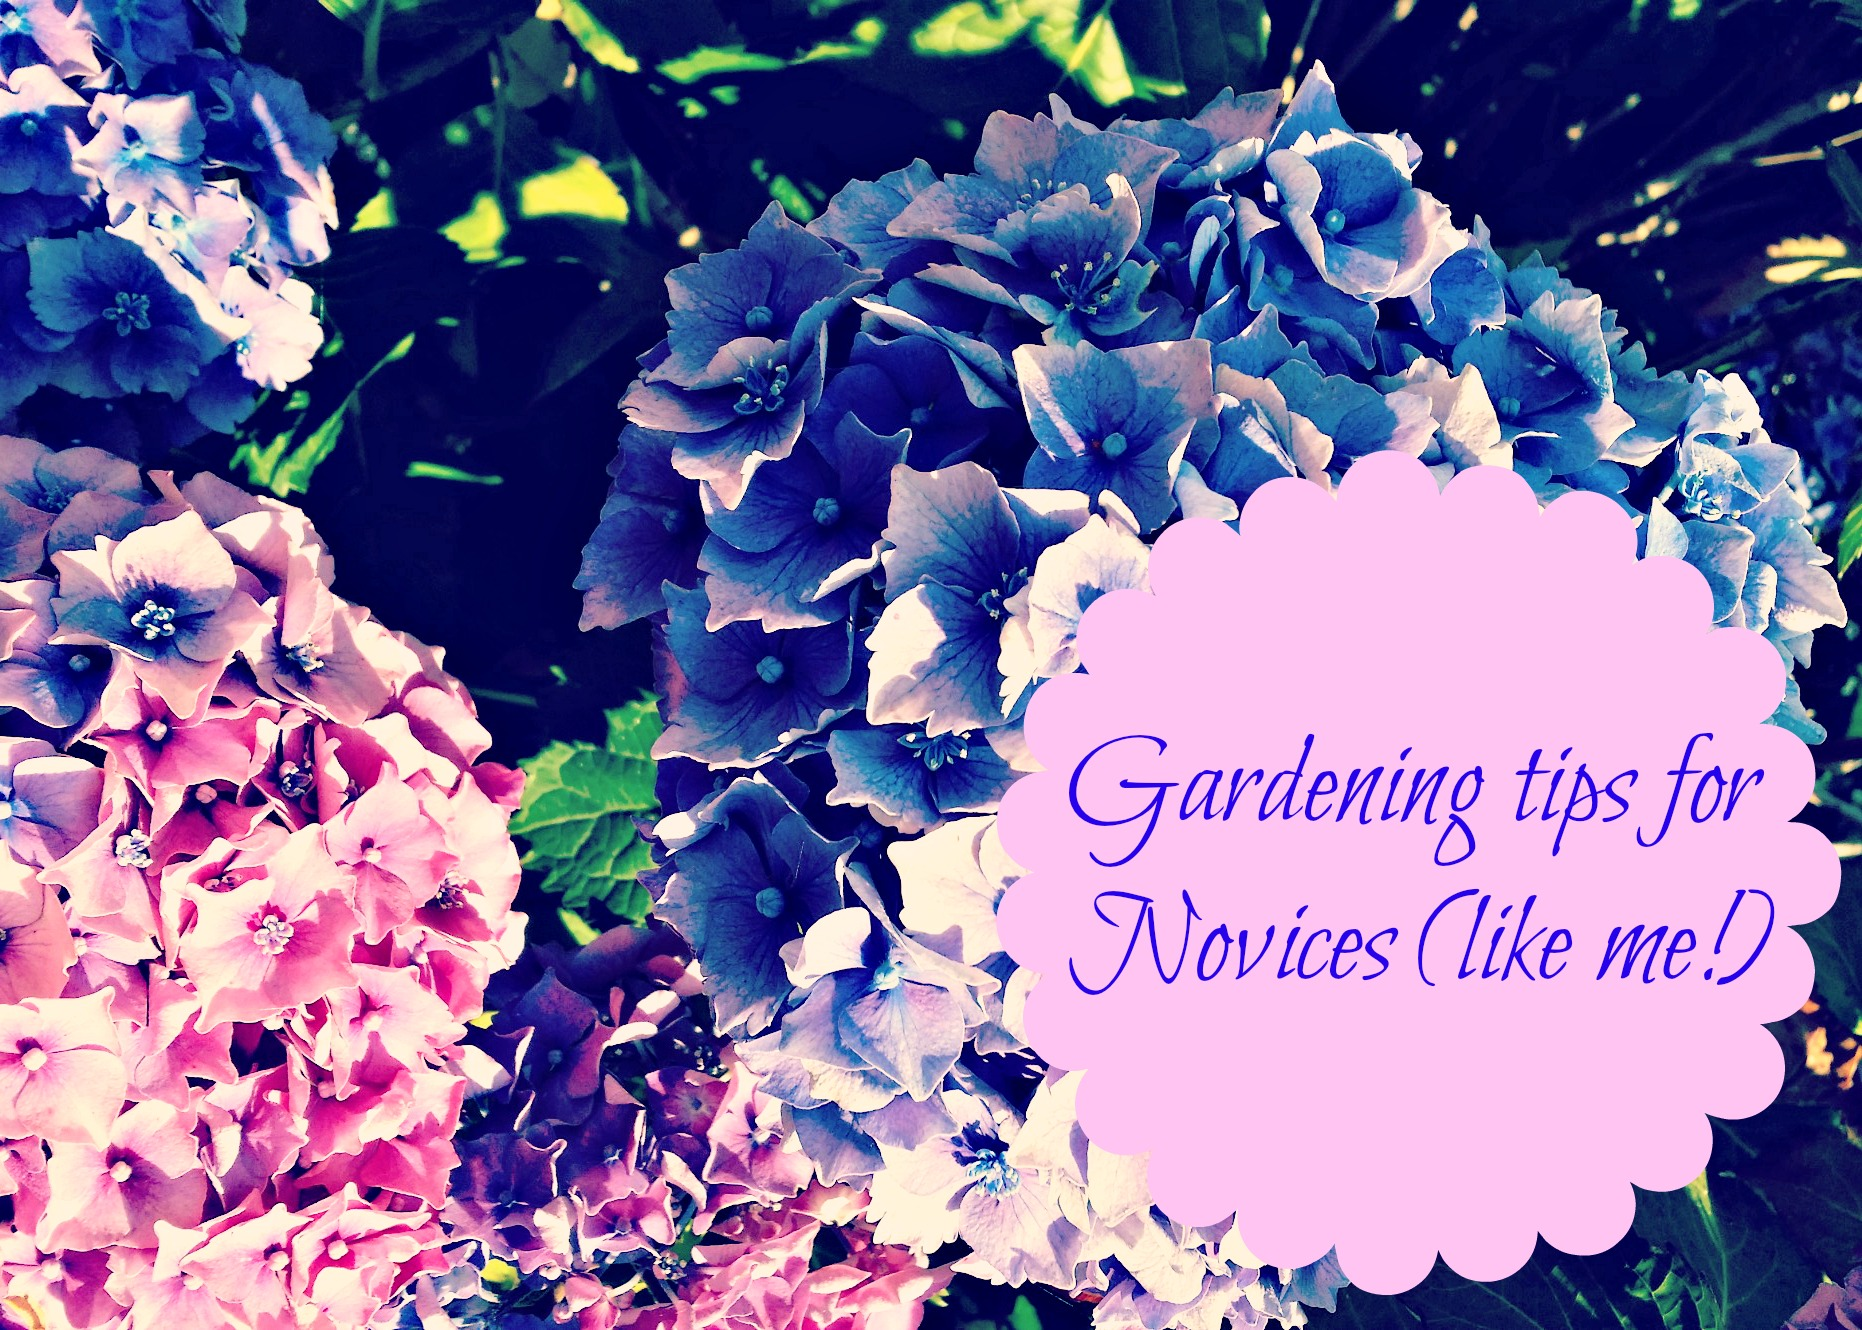 Gardening tips for novices